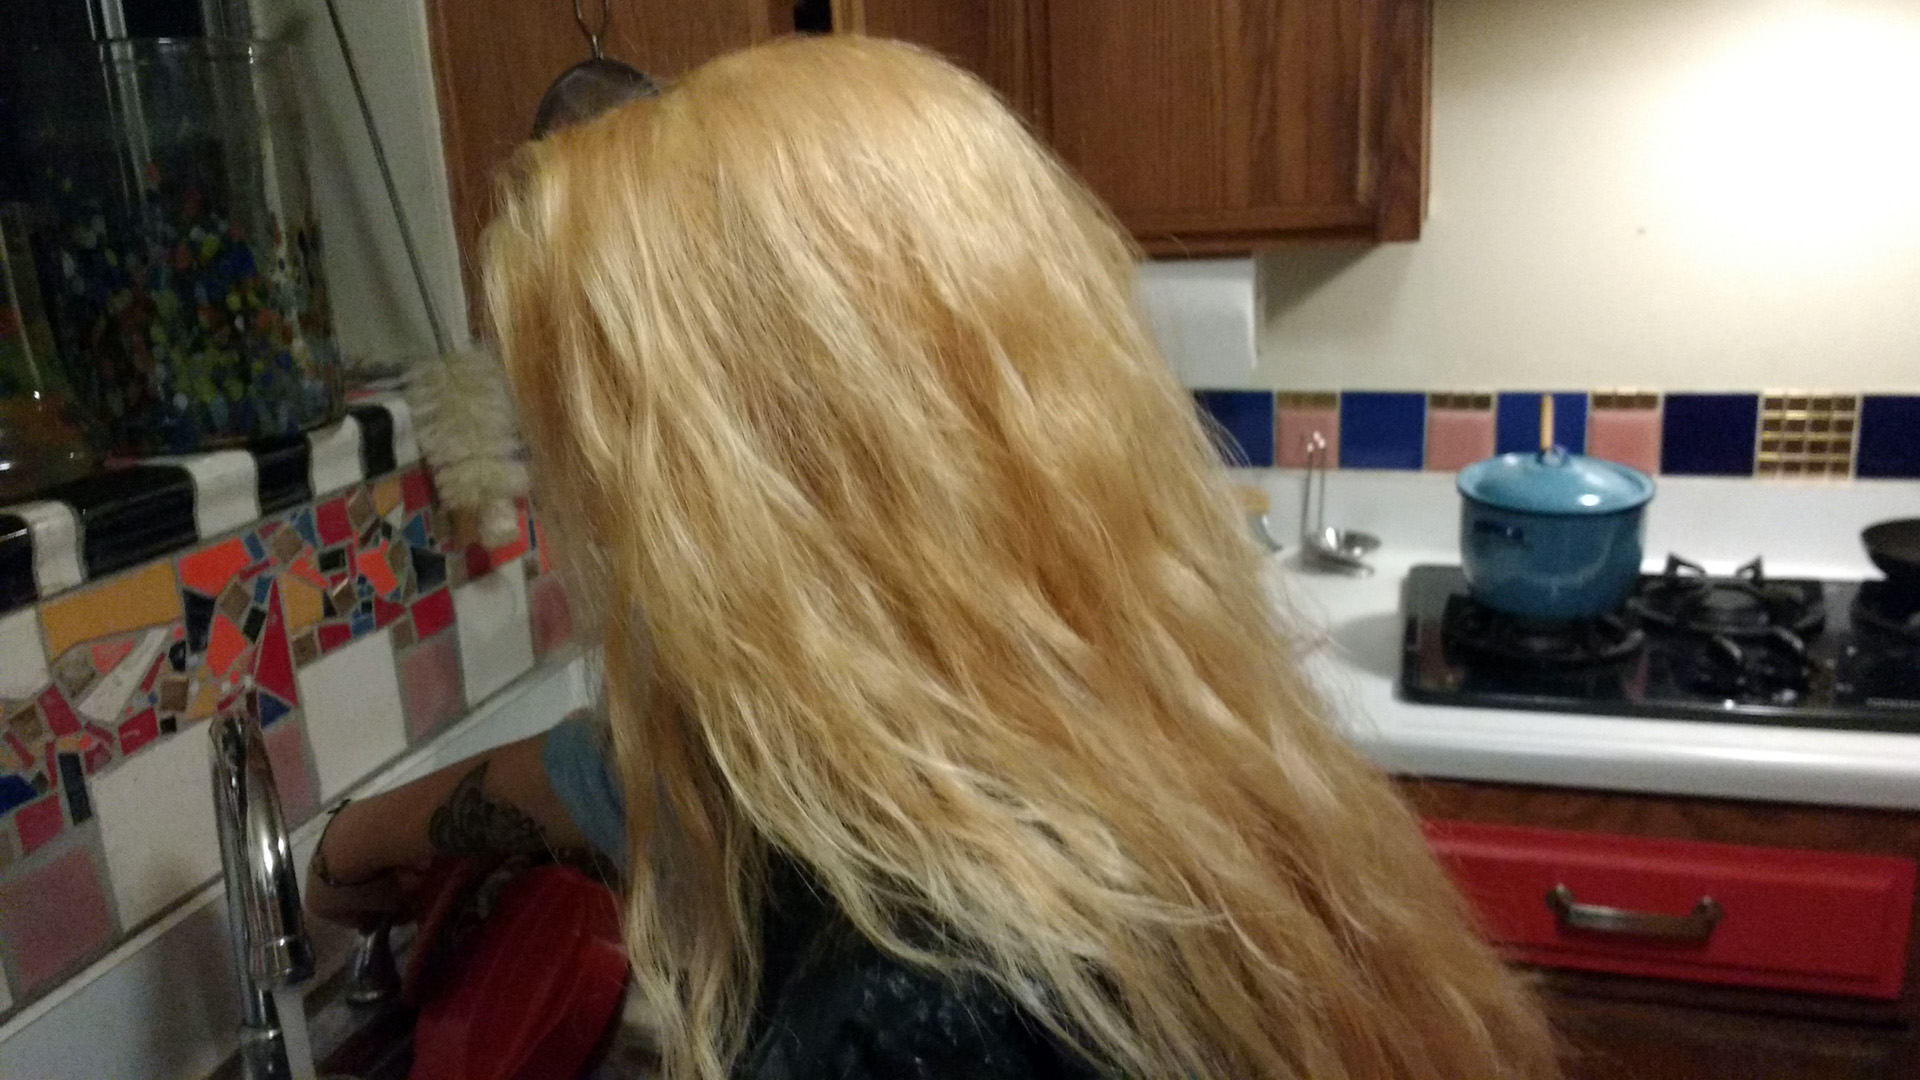 Maya's hair in blonde